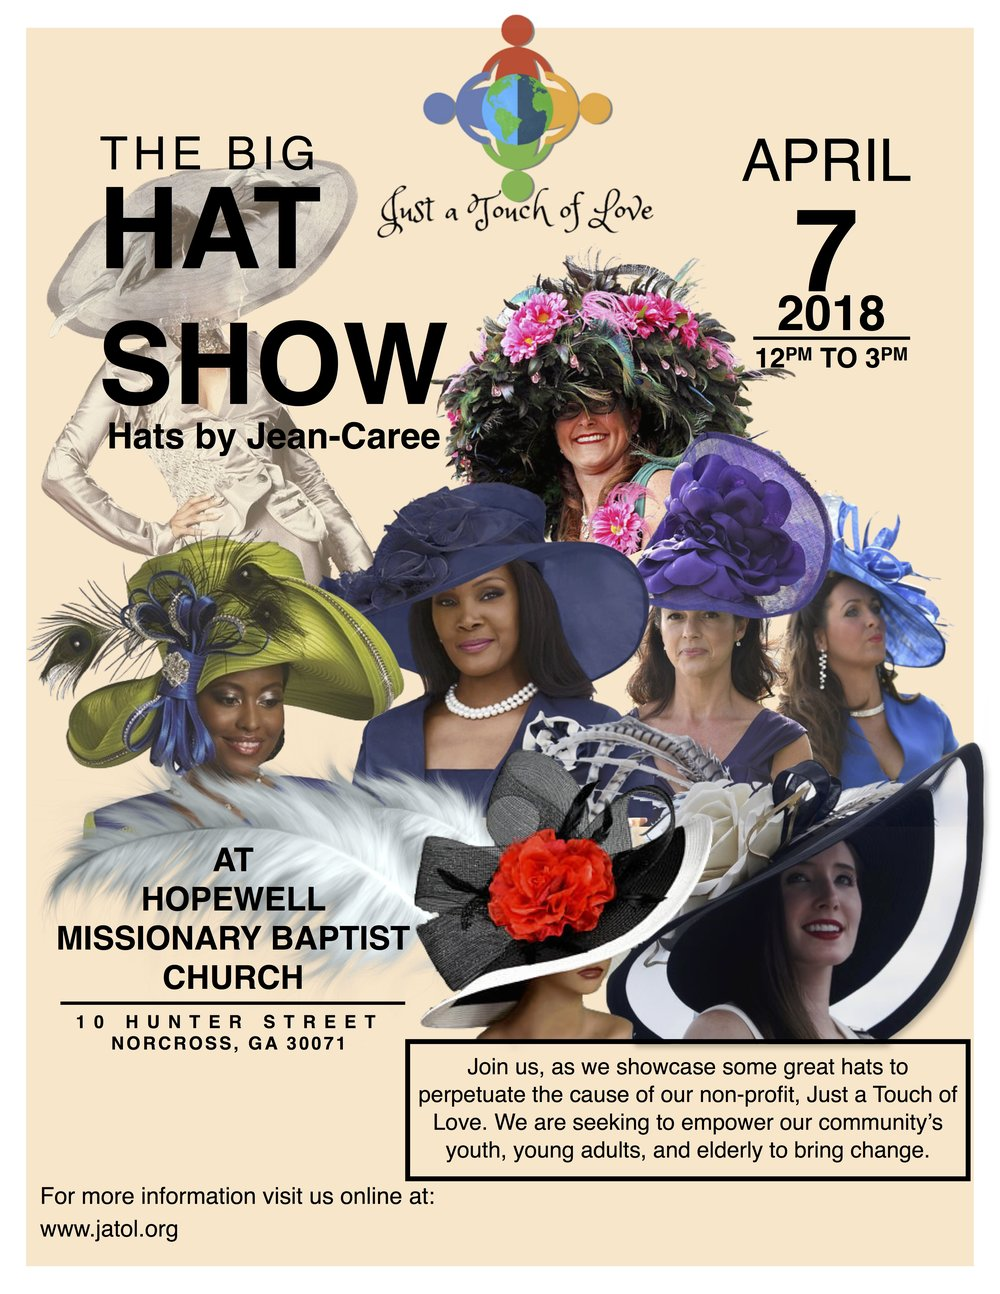 The Big Hat Show Flyer.jpg